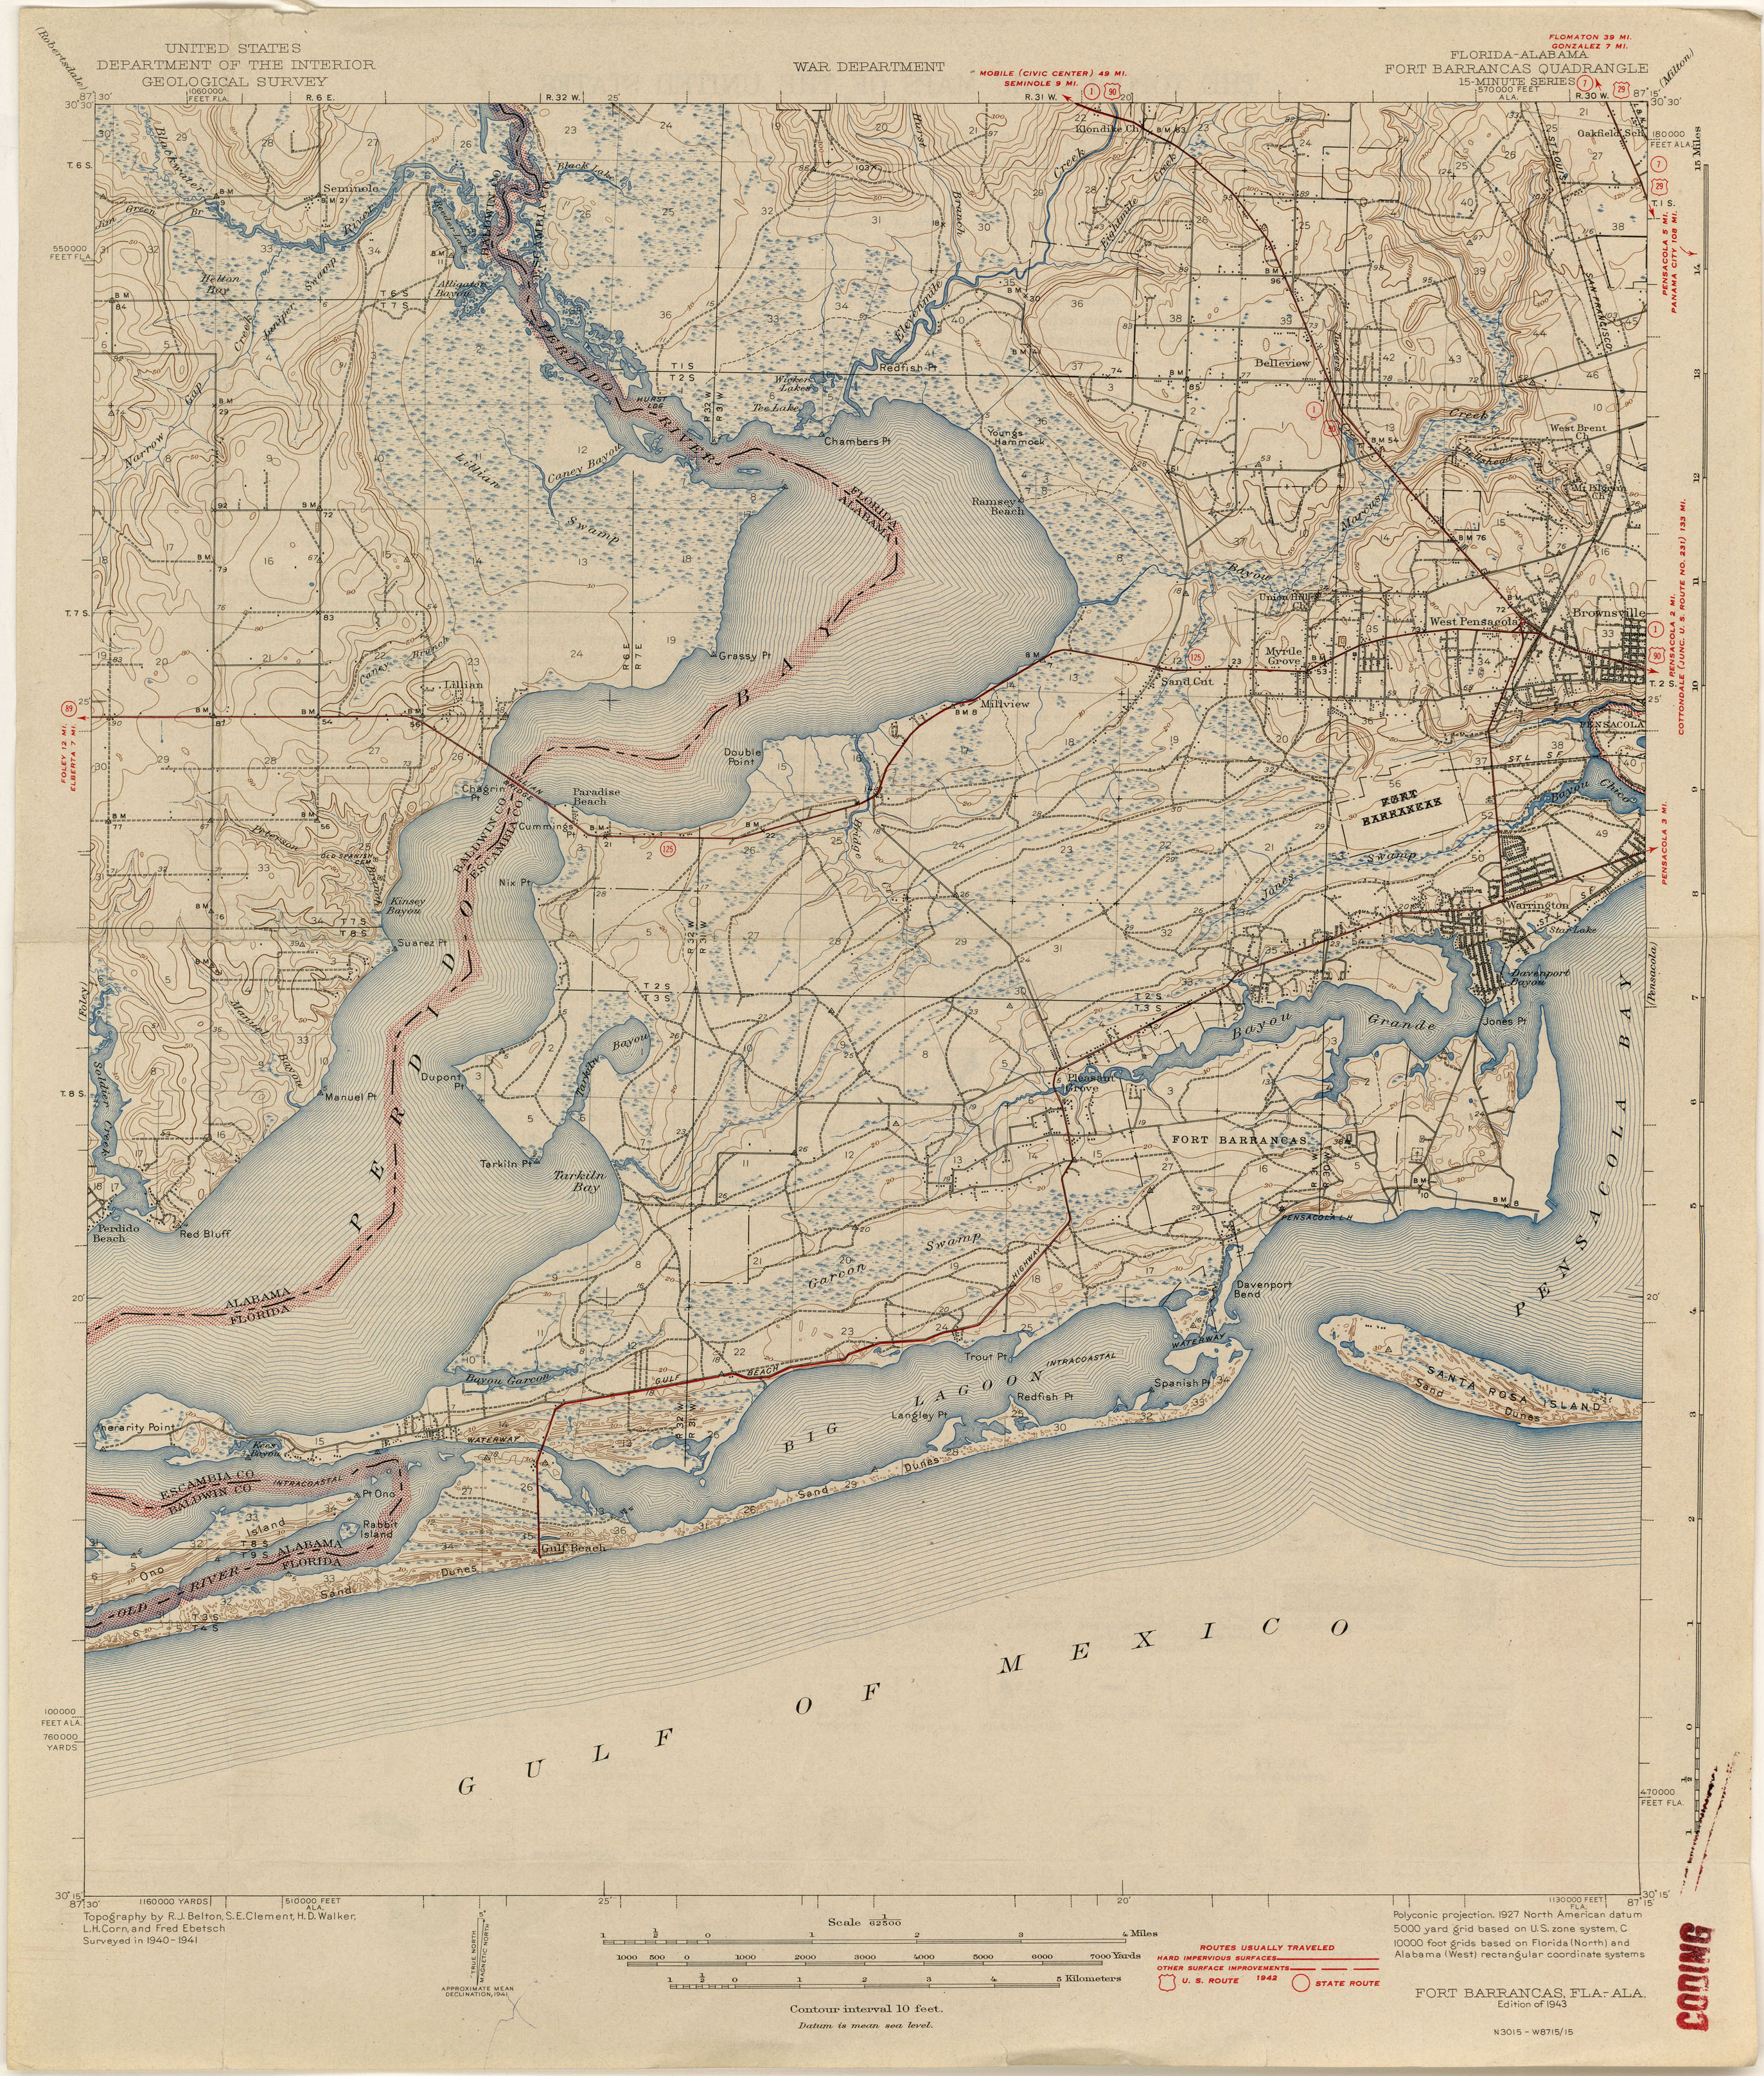 Florida Historical Topographic Maps - Perry-Castañeda Map Collection - Usgs Topographic Maps Florida